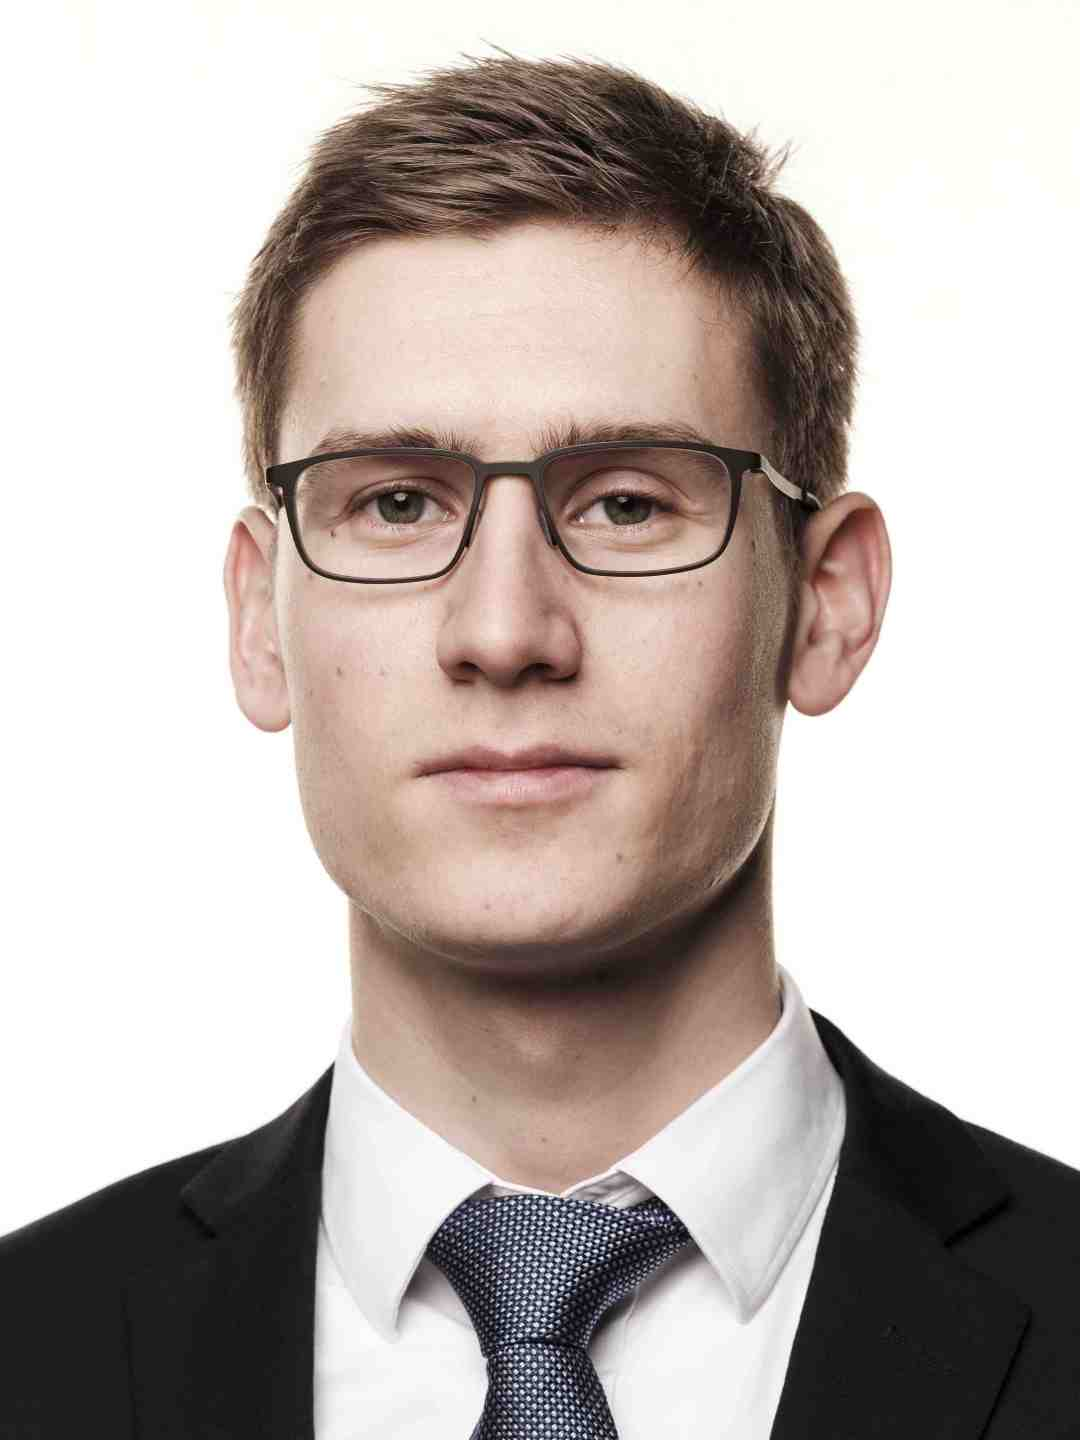 Ivar Duserud  Chief of Operations  Ivar has studied economics at Connecticut State University and has two years of experience as a blockchain consultant. Ivar is a talented executive managing day-to-day activities and planning at BitGate and BitSpace.